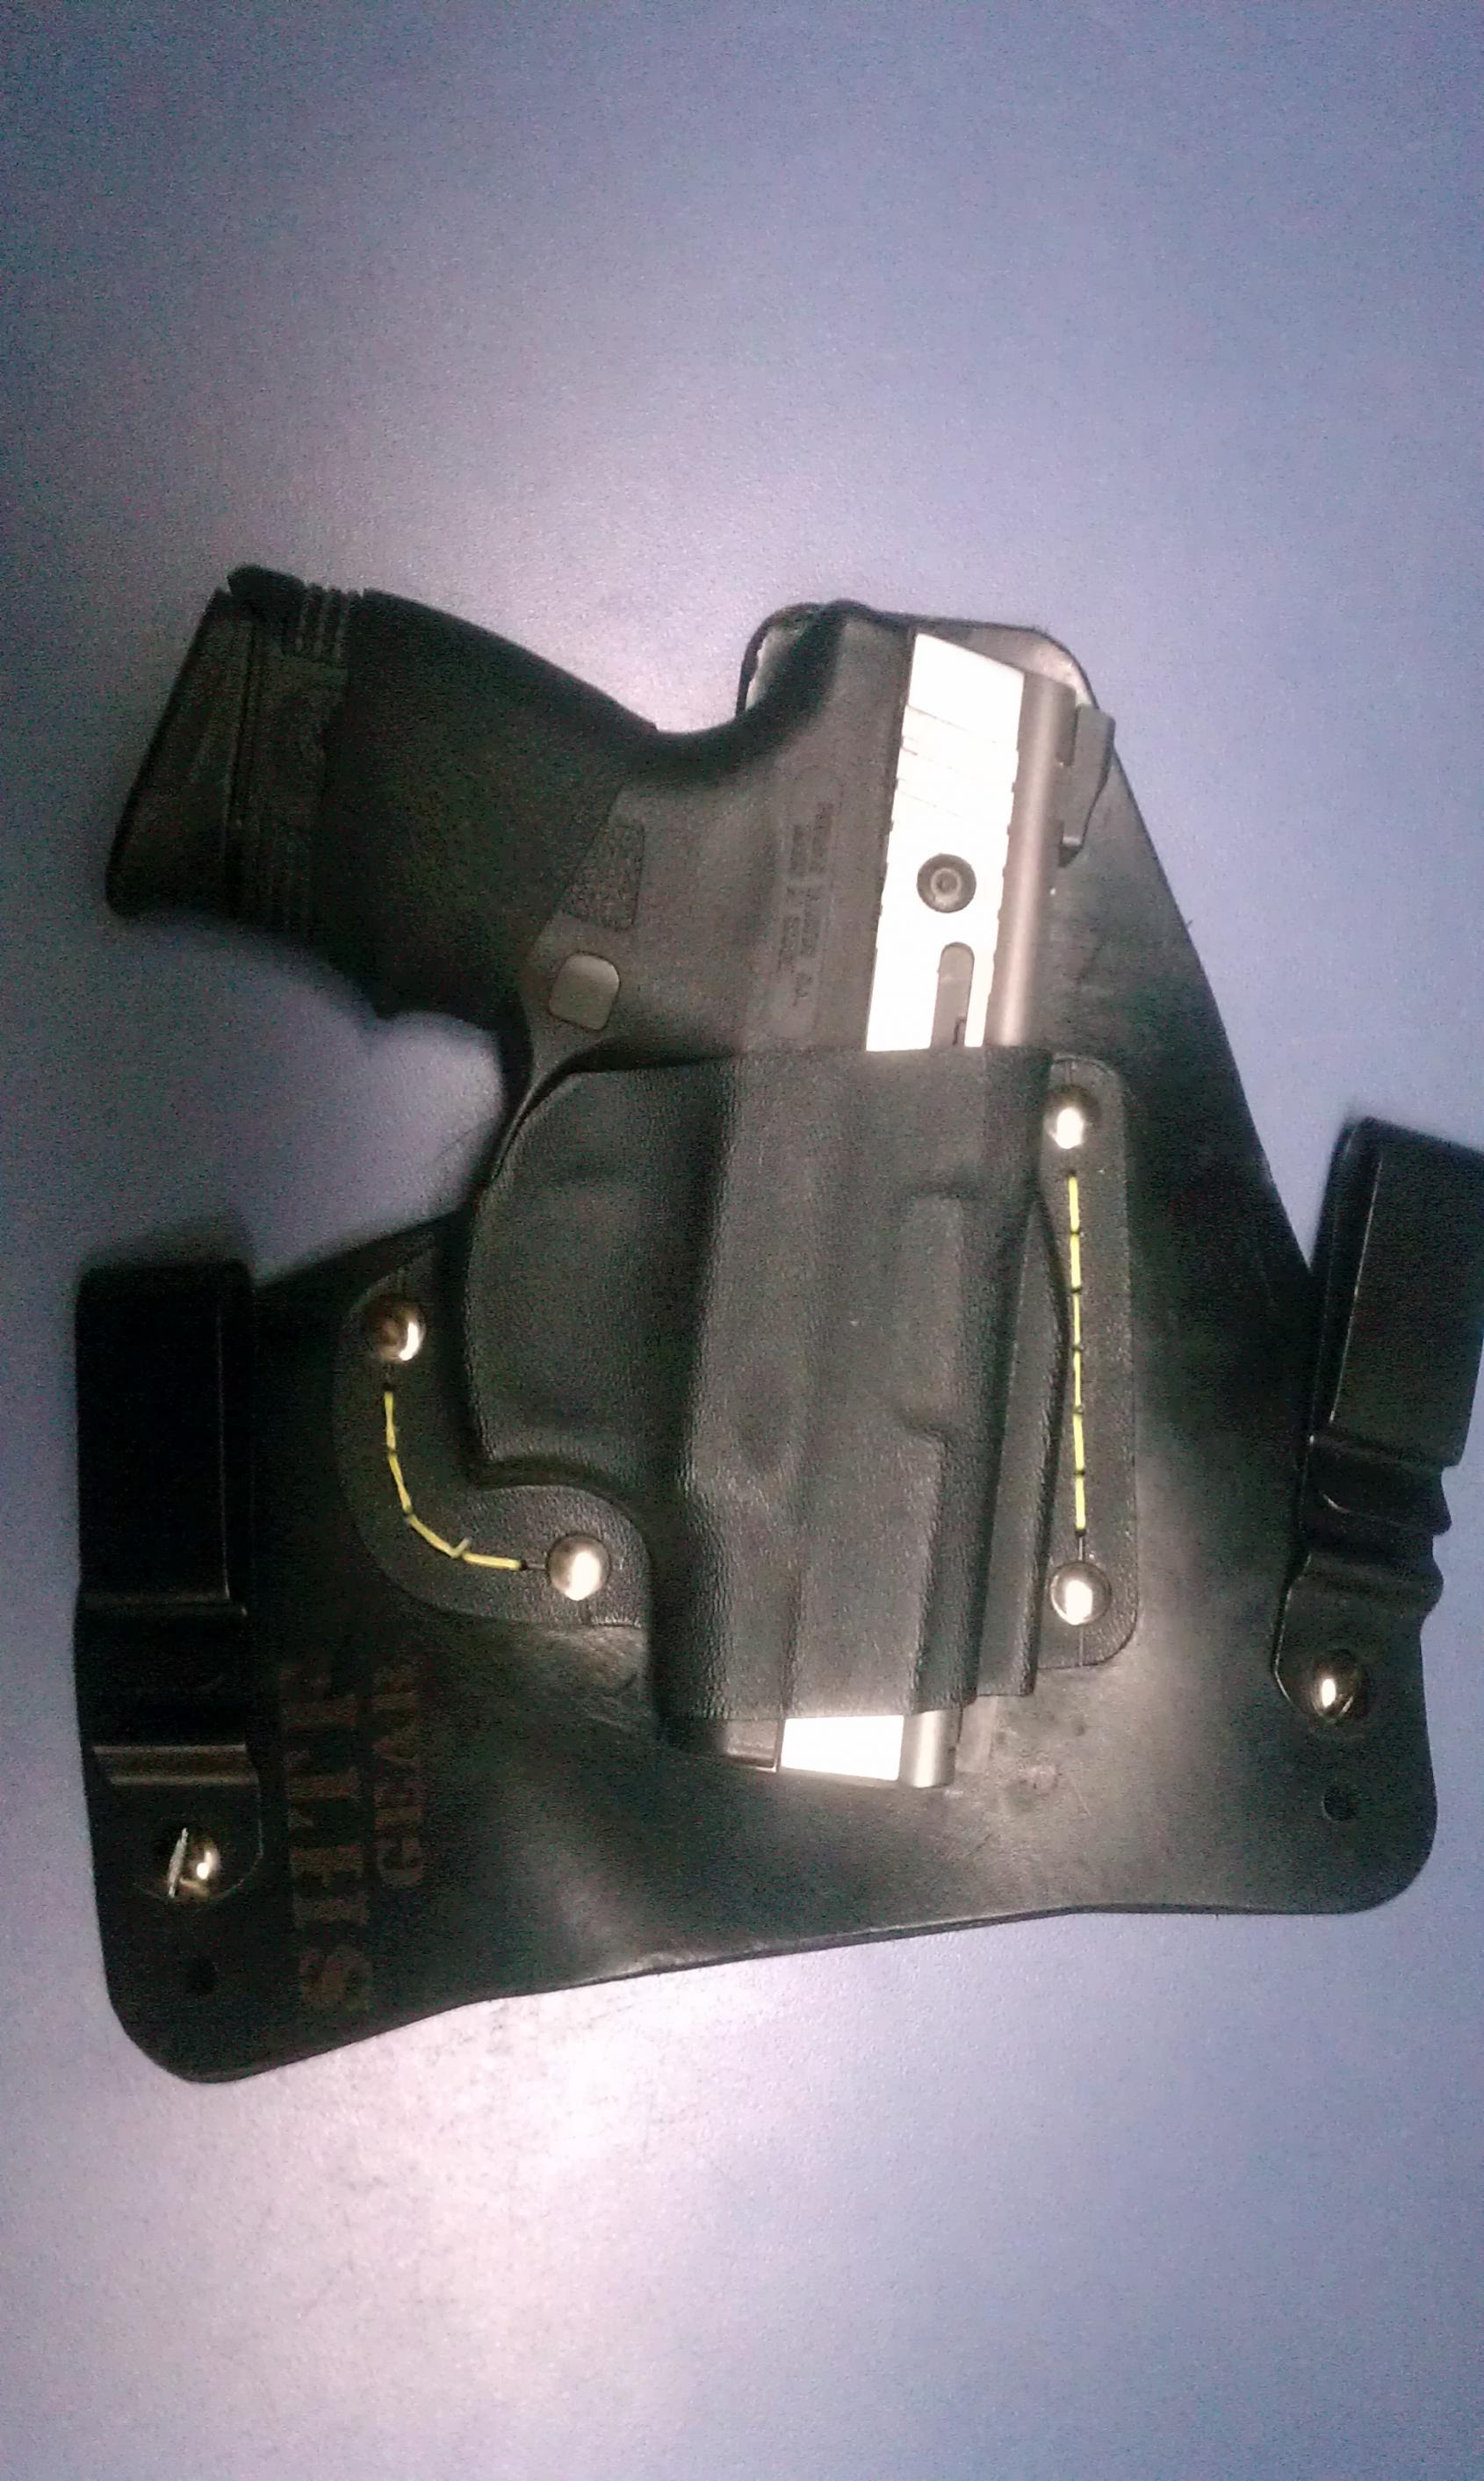 My new SHTF gear ACE-1 IWB holster-uploadfromtaptalk1312344916322.jpg